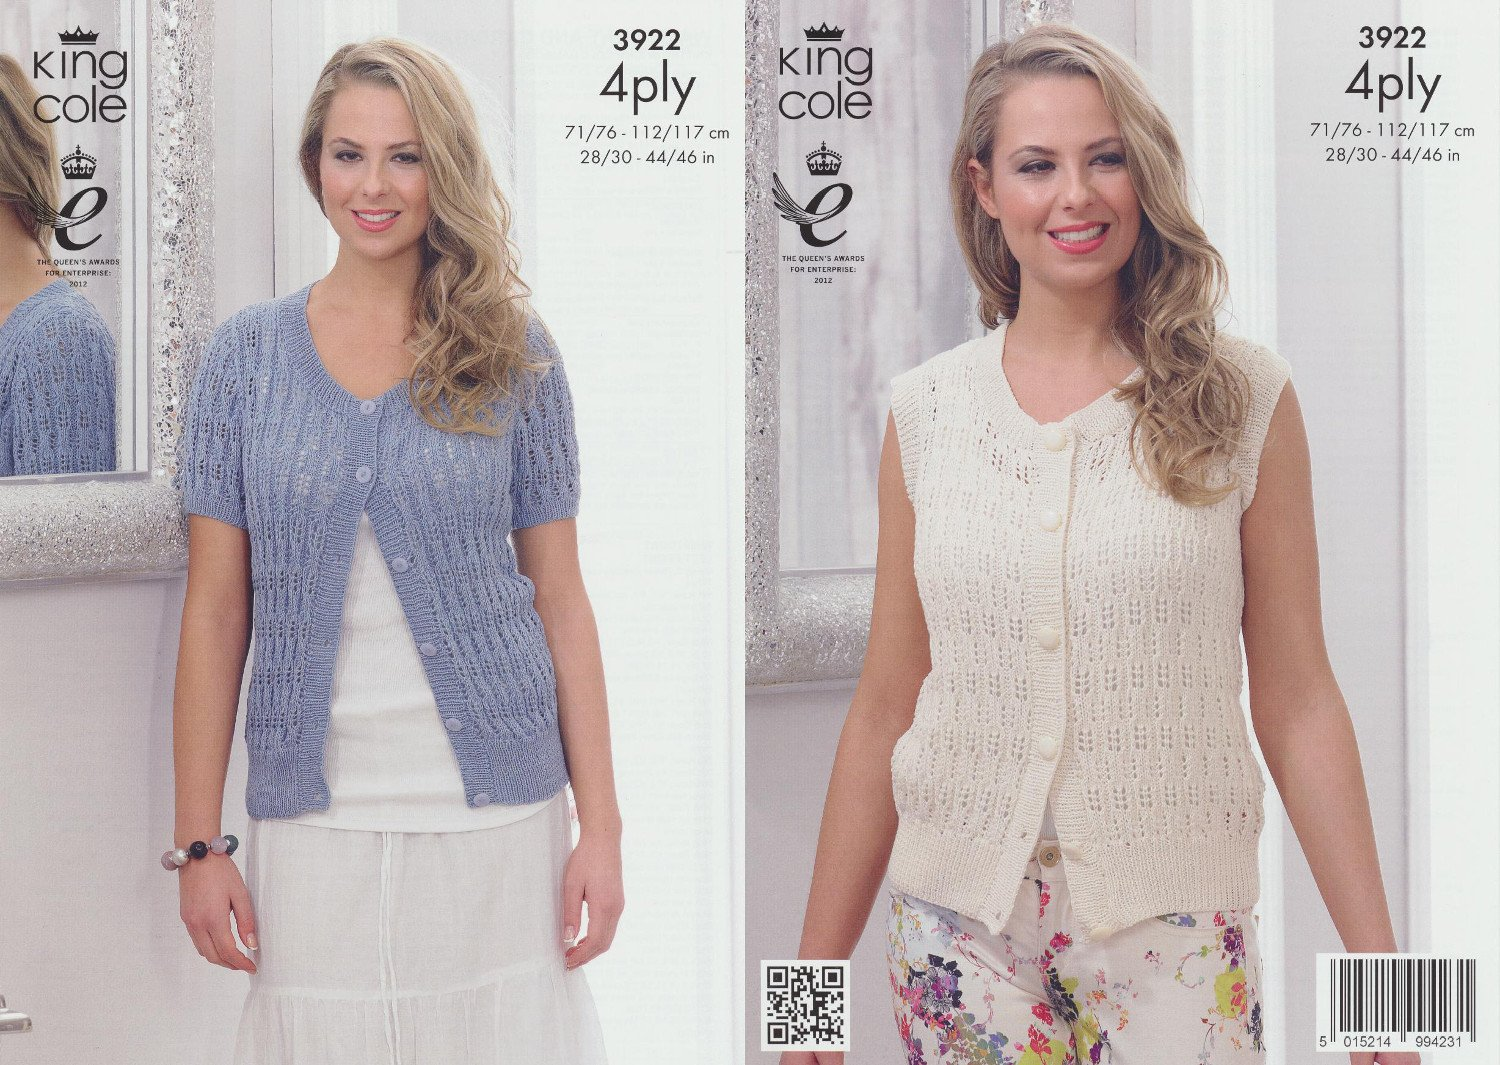 6e5f82ffc King Cole 4 Ply Pattern - 3922 Womens Short Sleeved Summer Cardigan and  Waistcoat  Amazon.co.uk  Kitchen   Home